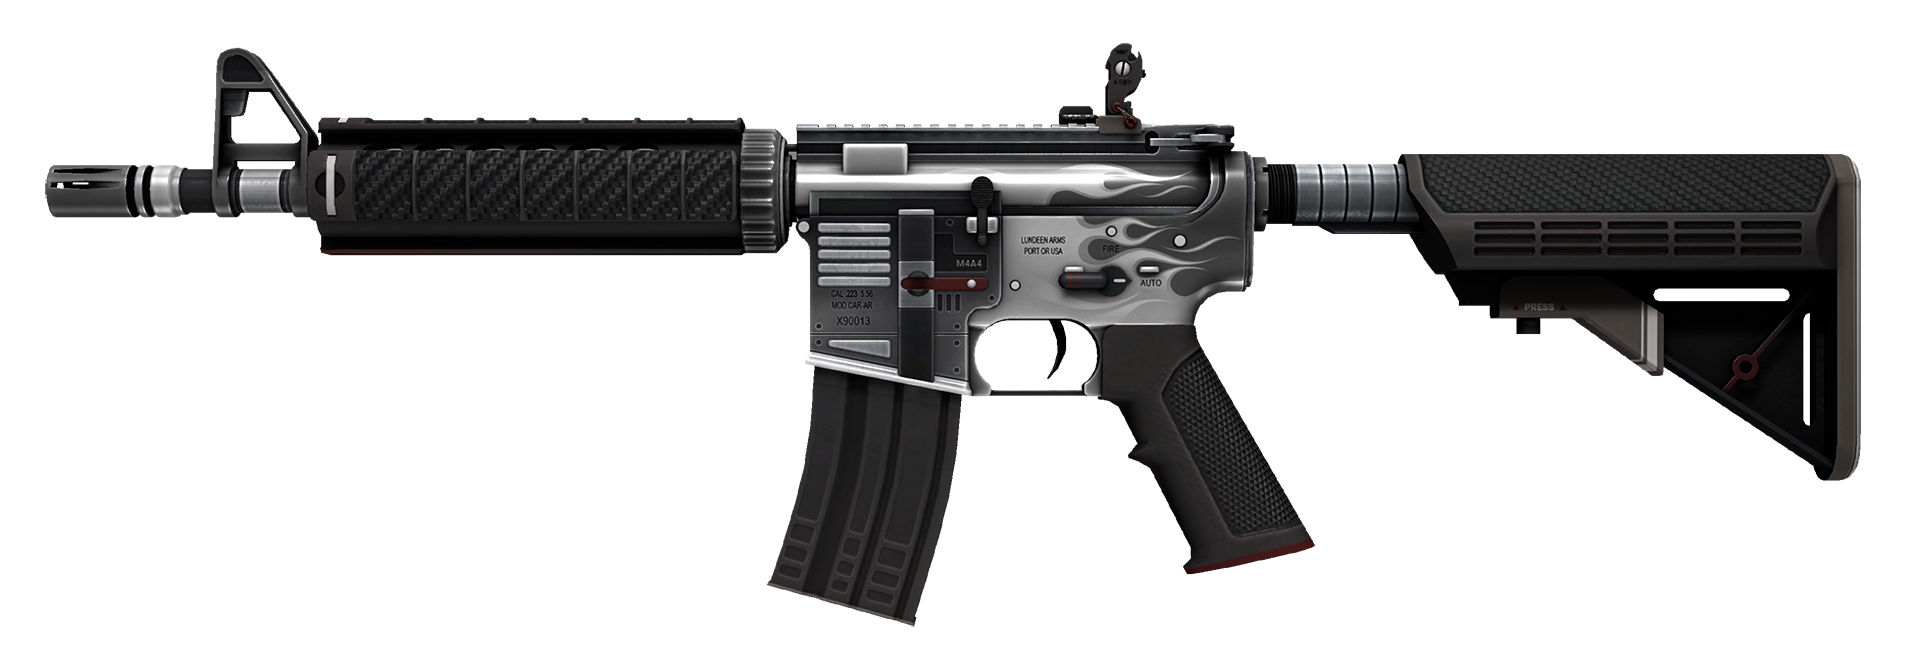 M4A4 Magnesium Large Rendering